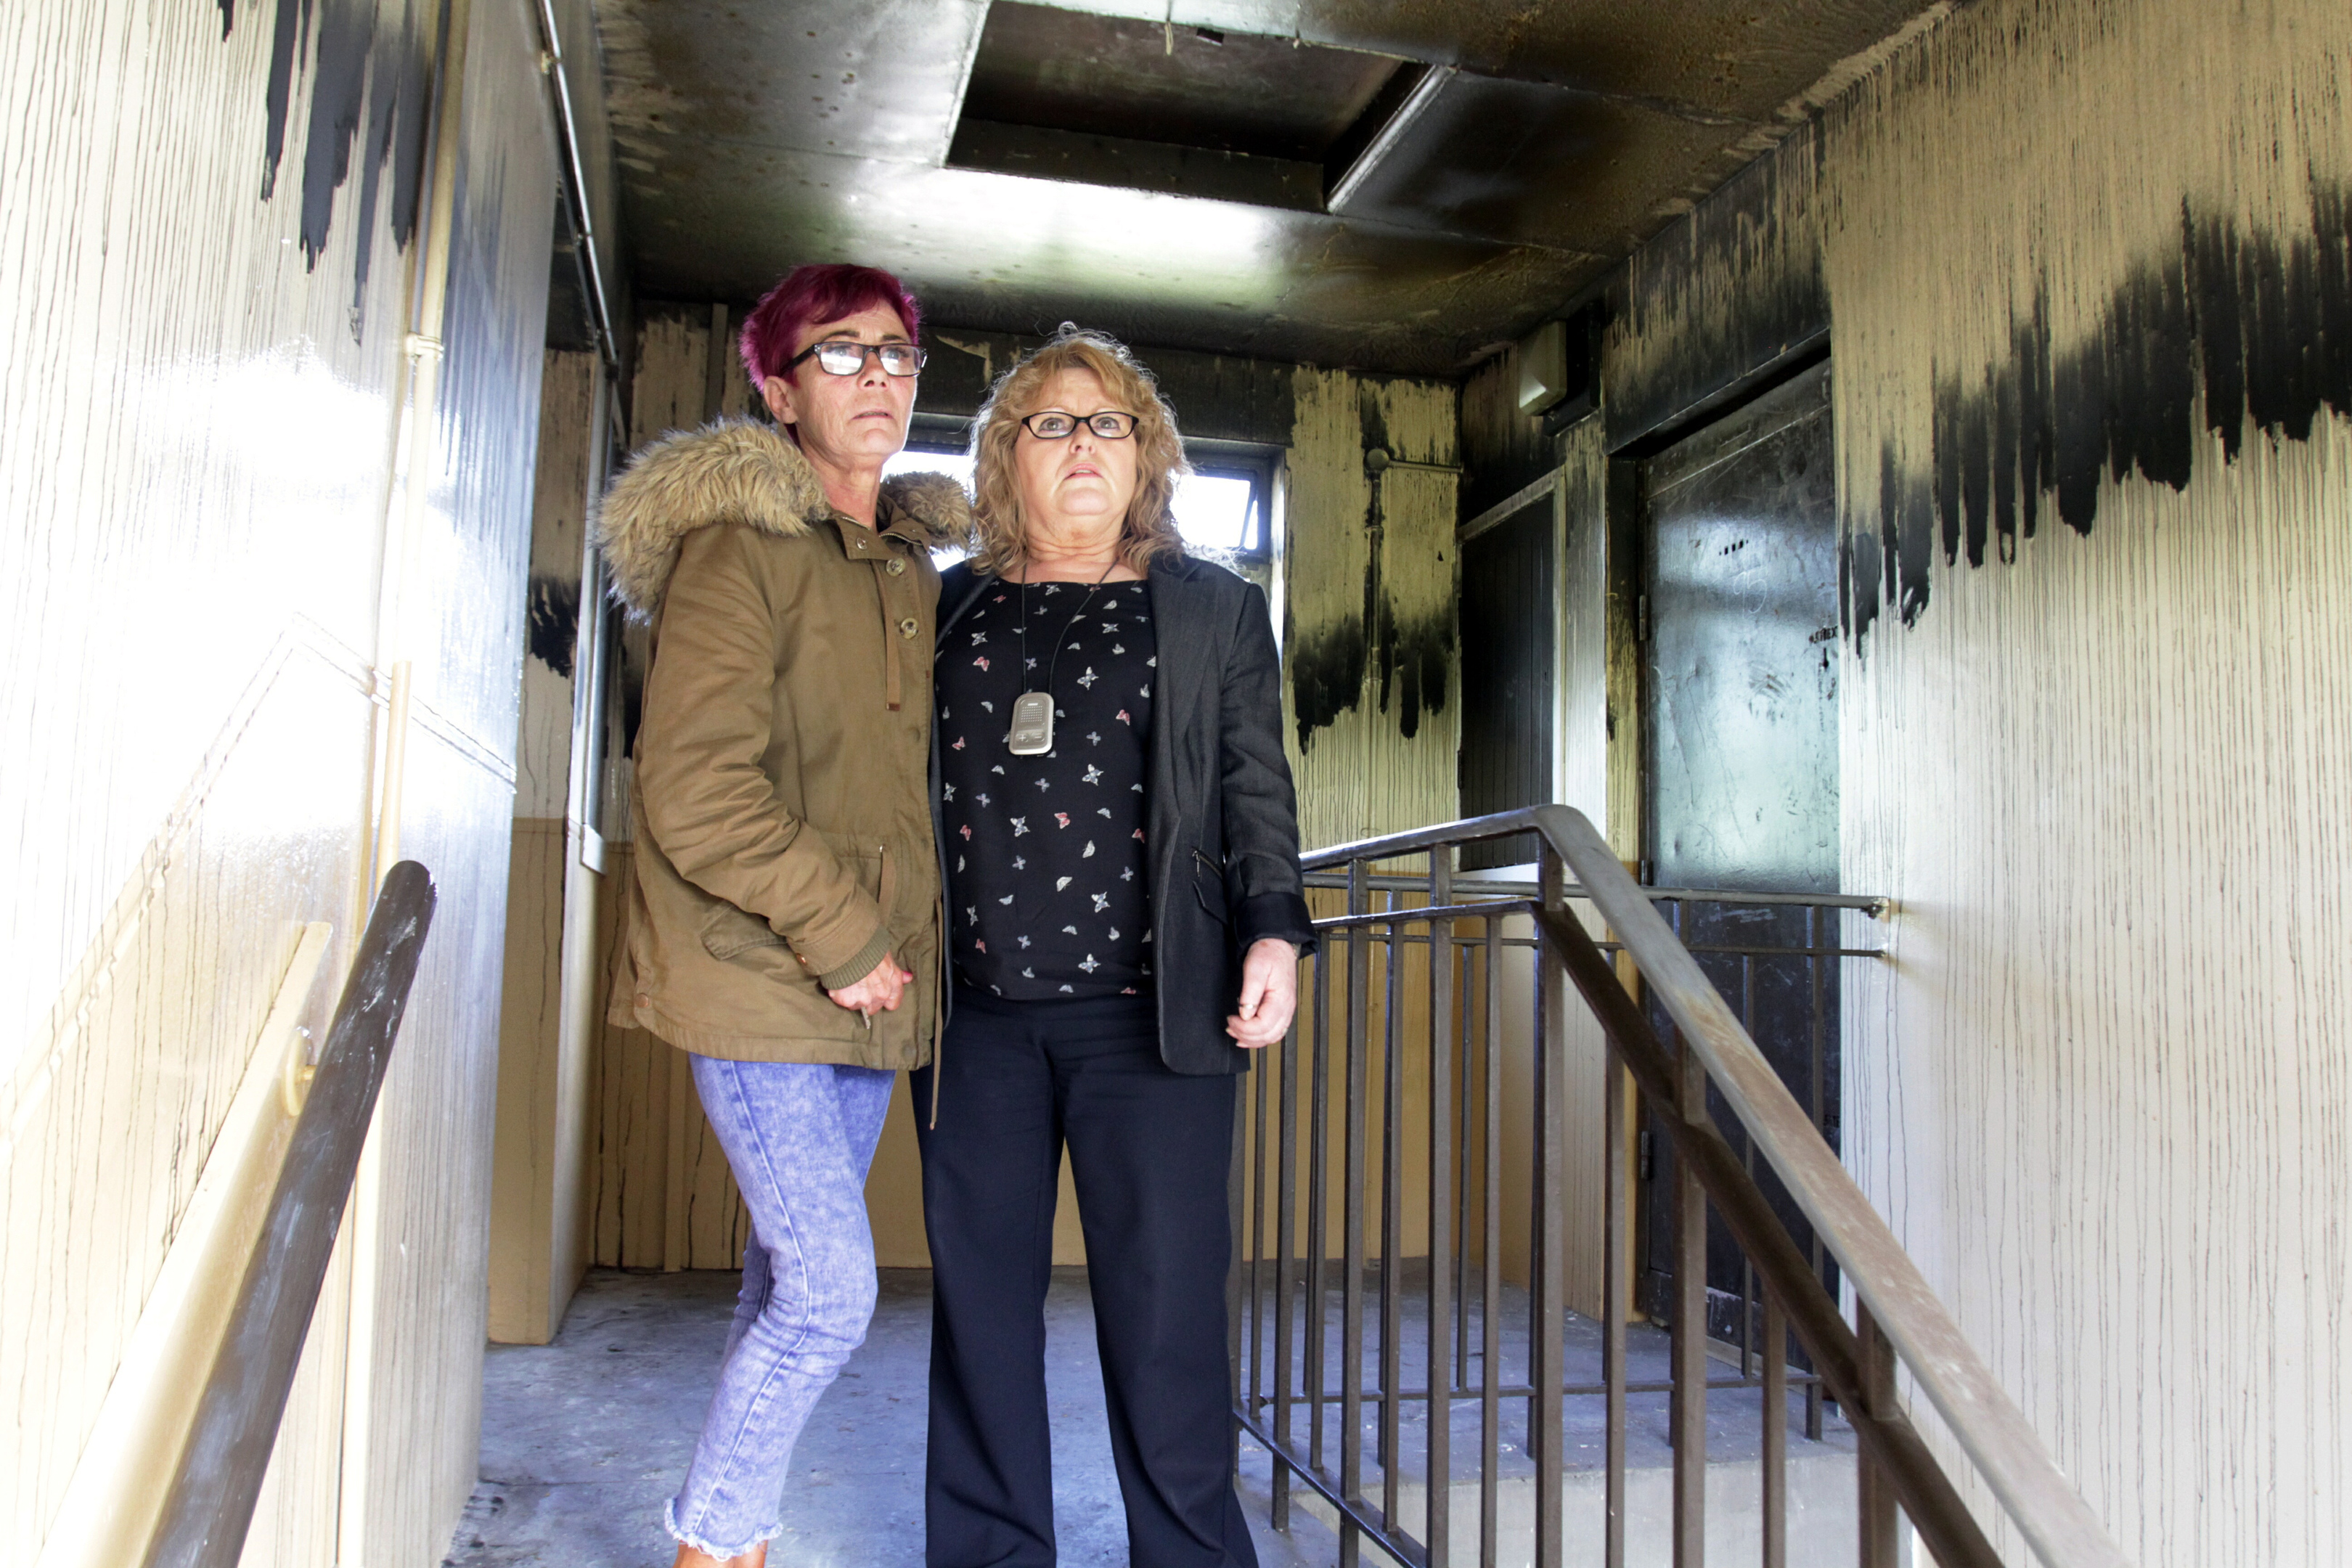 Davina Smith (left), from Douglas, who lost all of her possessions in a house fire, with her friend, Veronica Lynch.